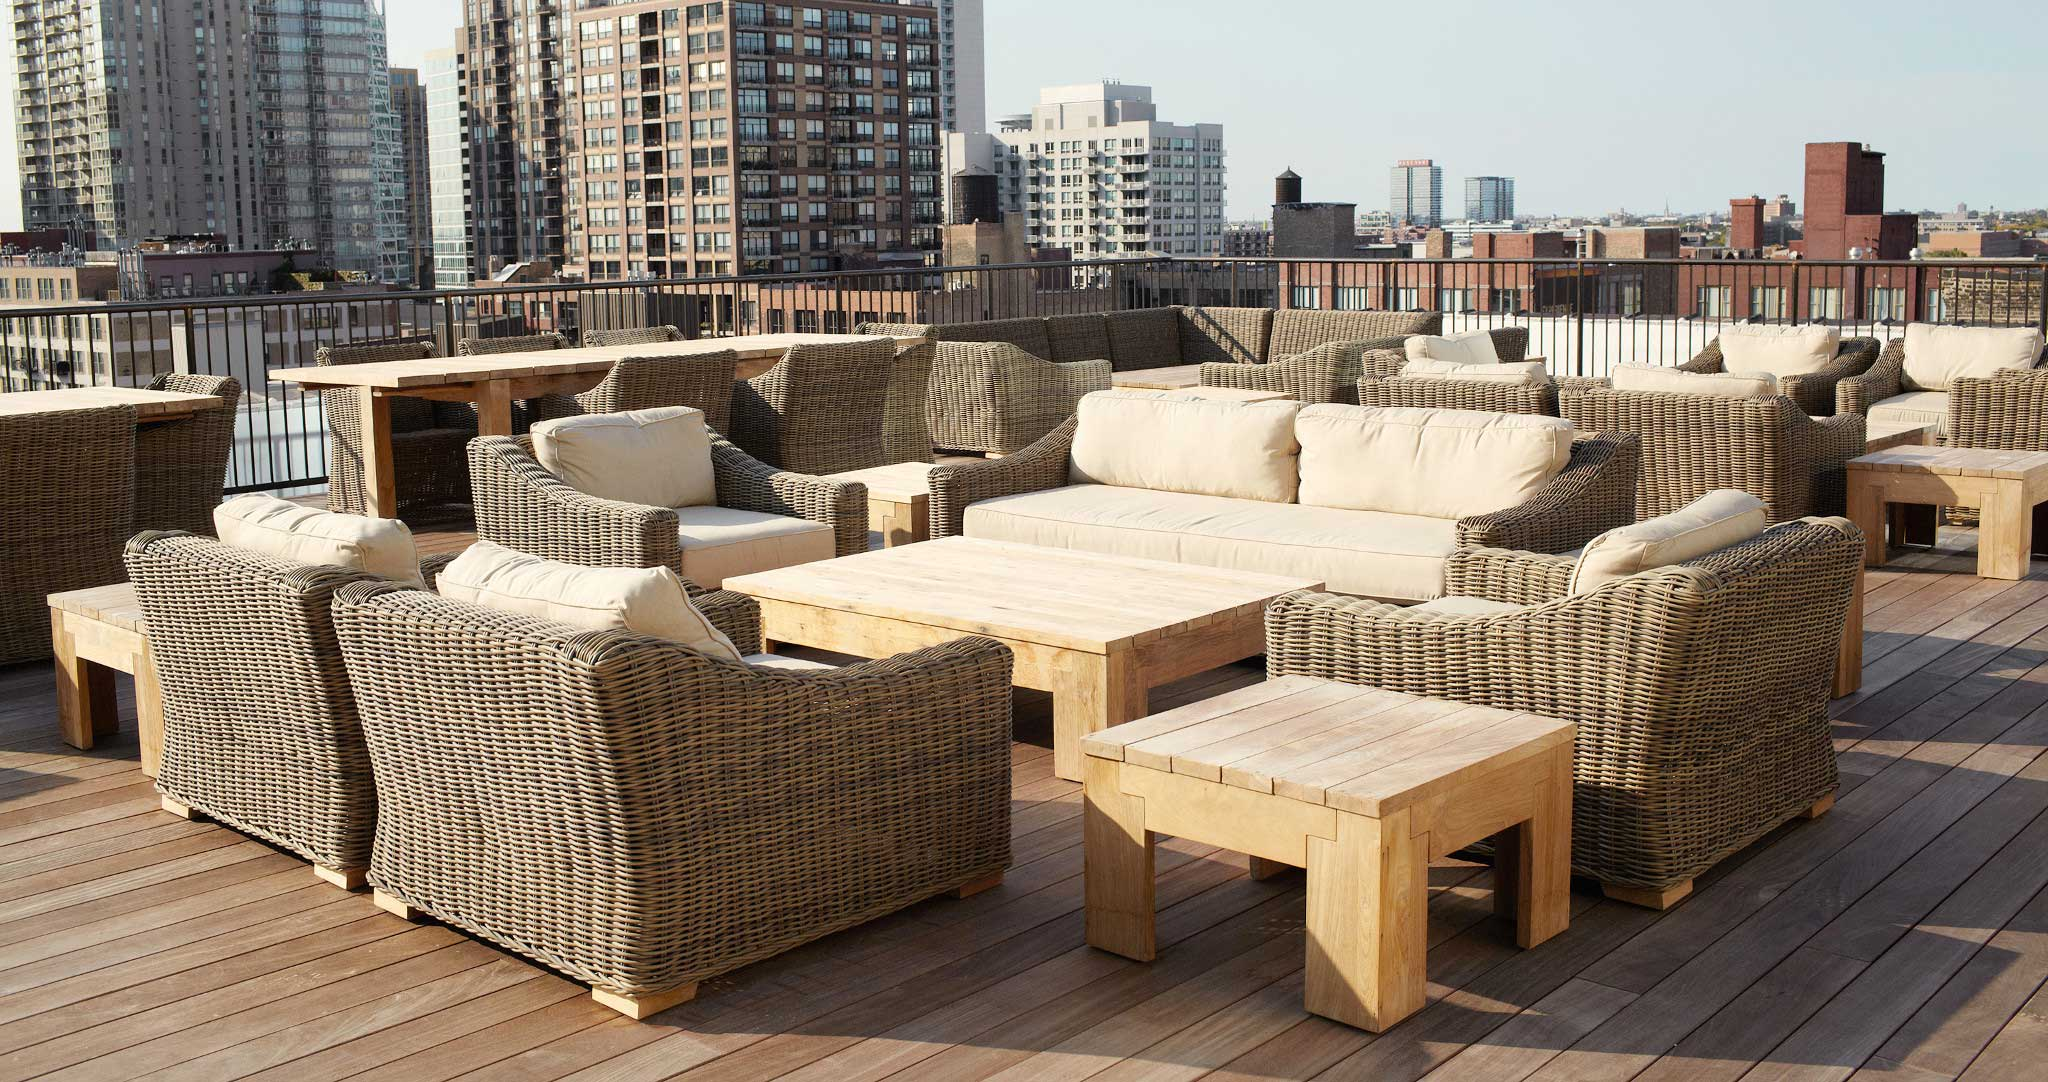 Trunk Club Rooftop